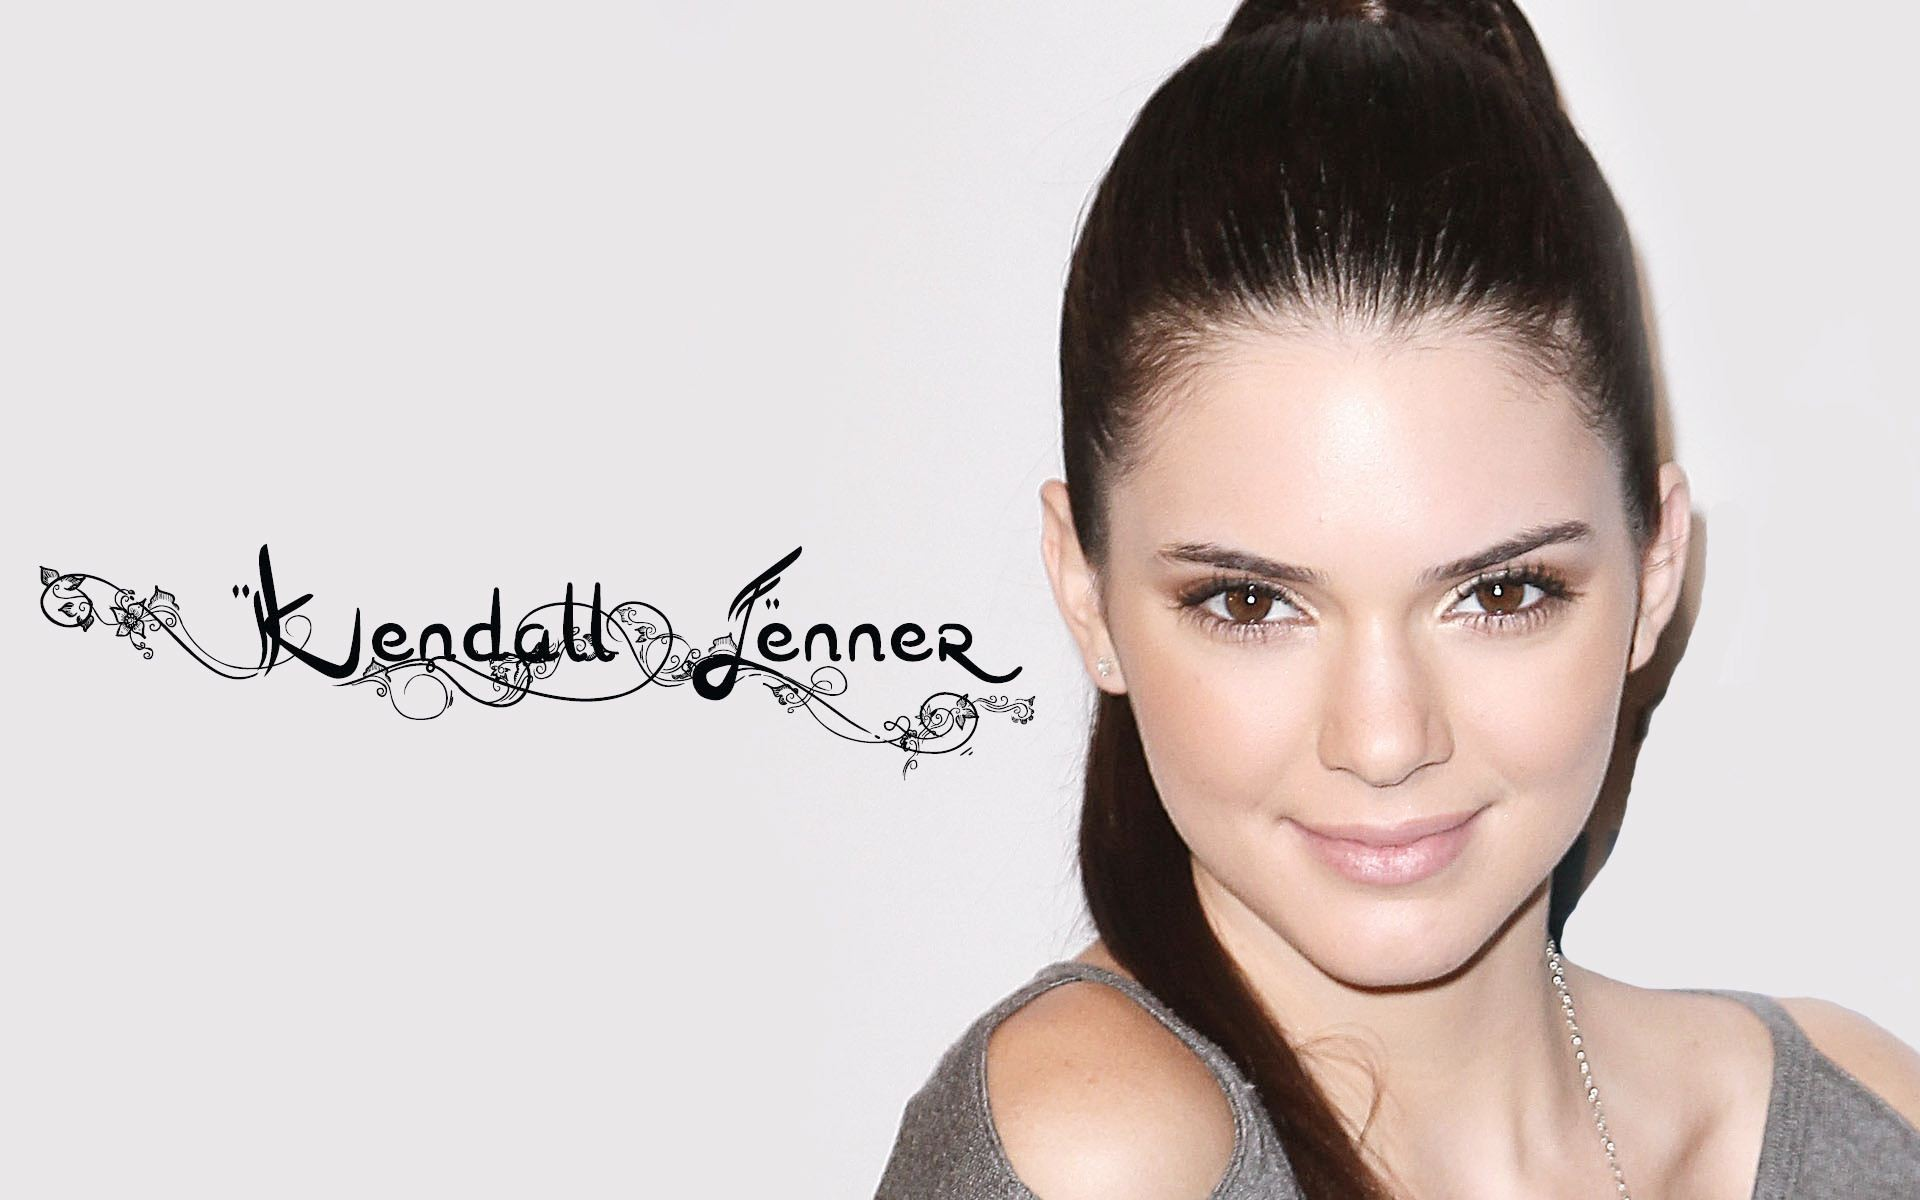 Kendall Jenner Wallpapers High Resolution and Quality Download 1920x1200